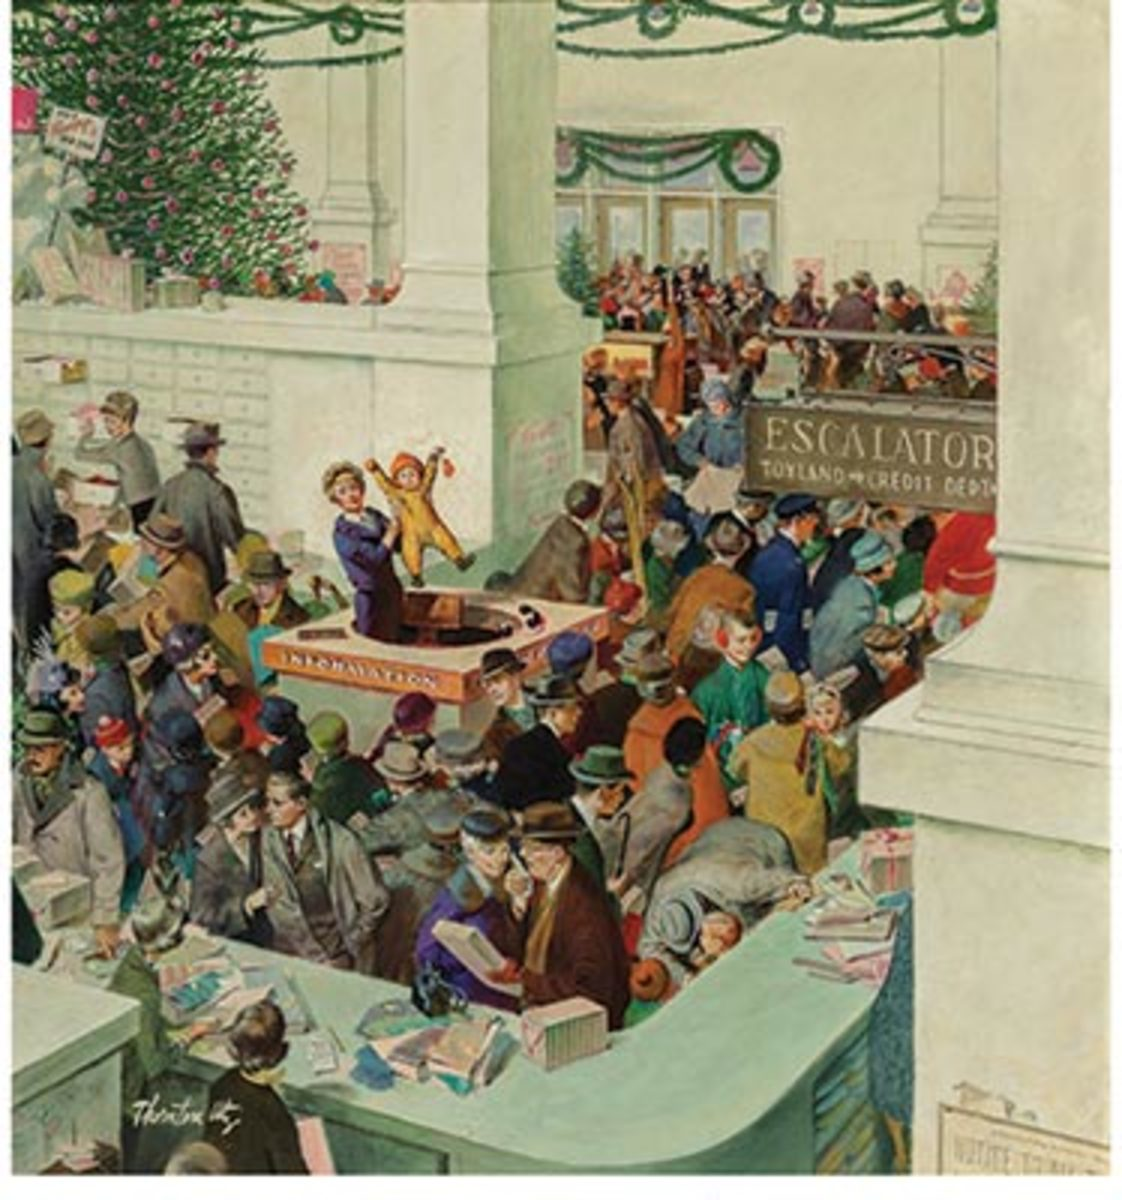 Thorton Utz Love's Lost Child at the Information Booth,The Saturday Evening Post cover, December 20, 1958 sold for $206,250 – a new auction record for the artist.